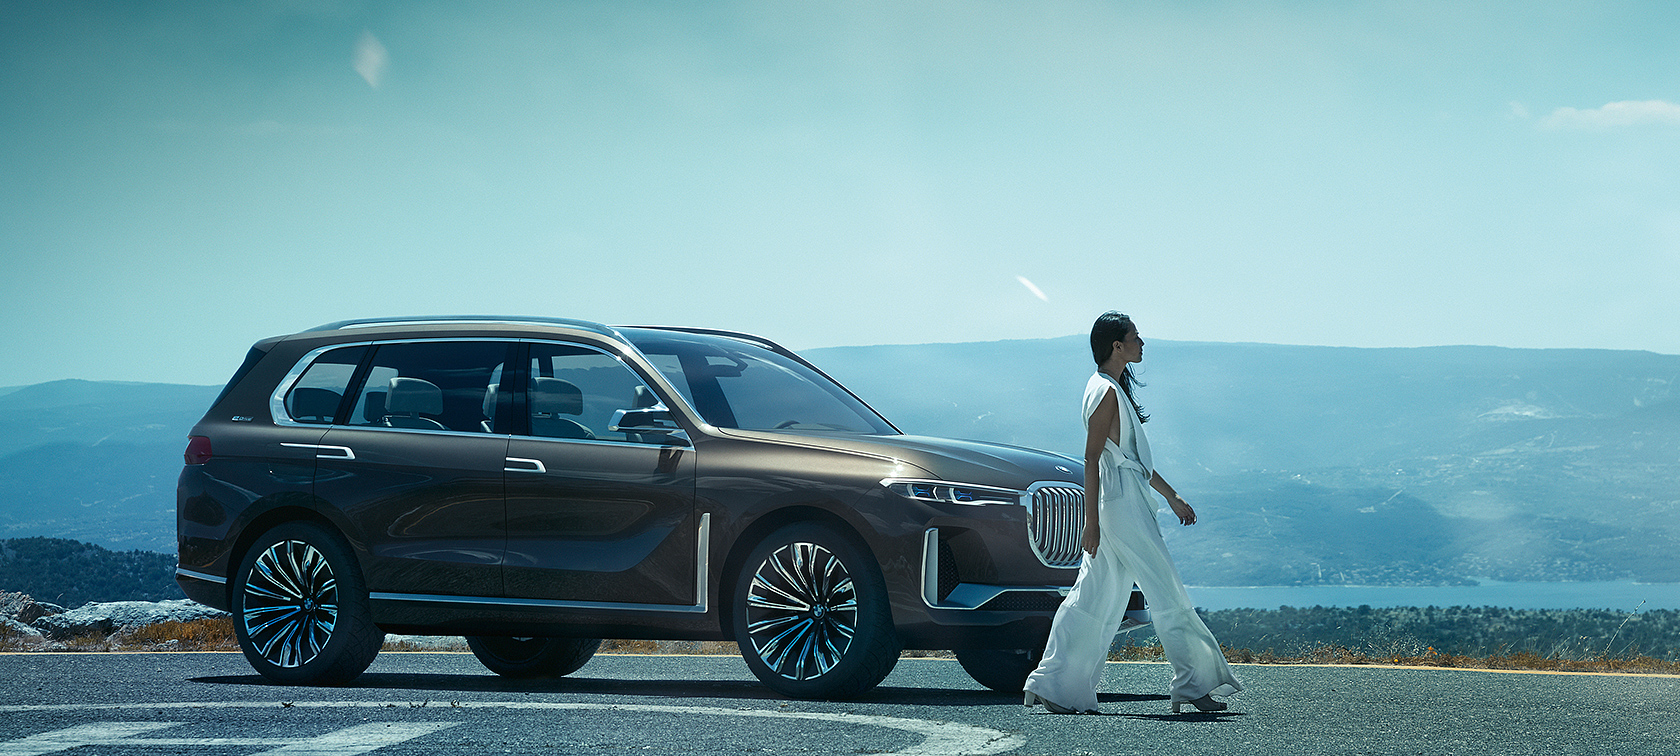 Concept Cars Bmw Concept X7 Iperformance